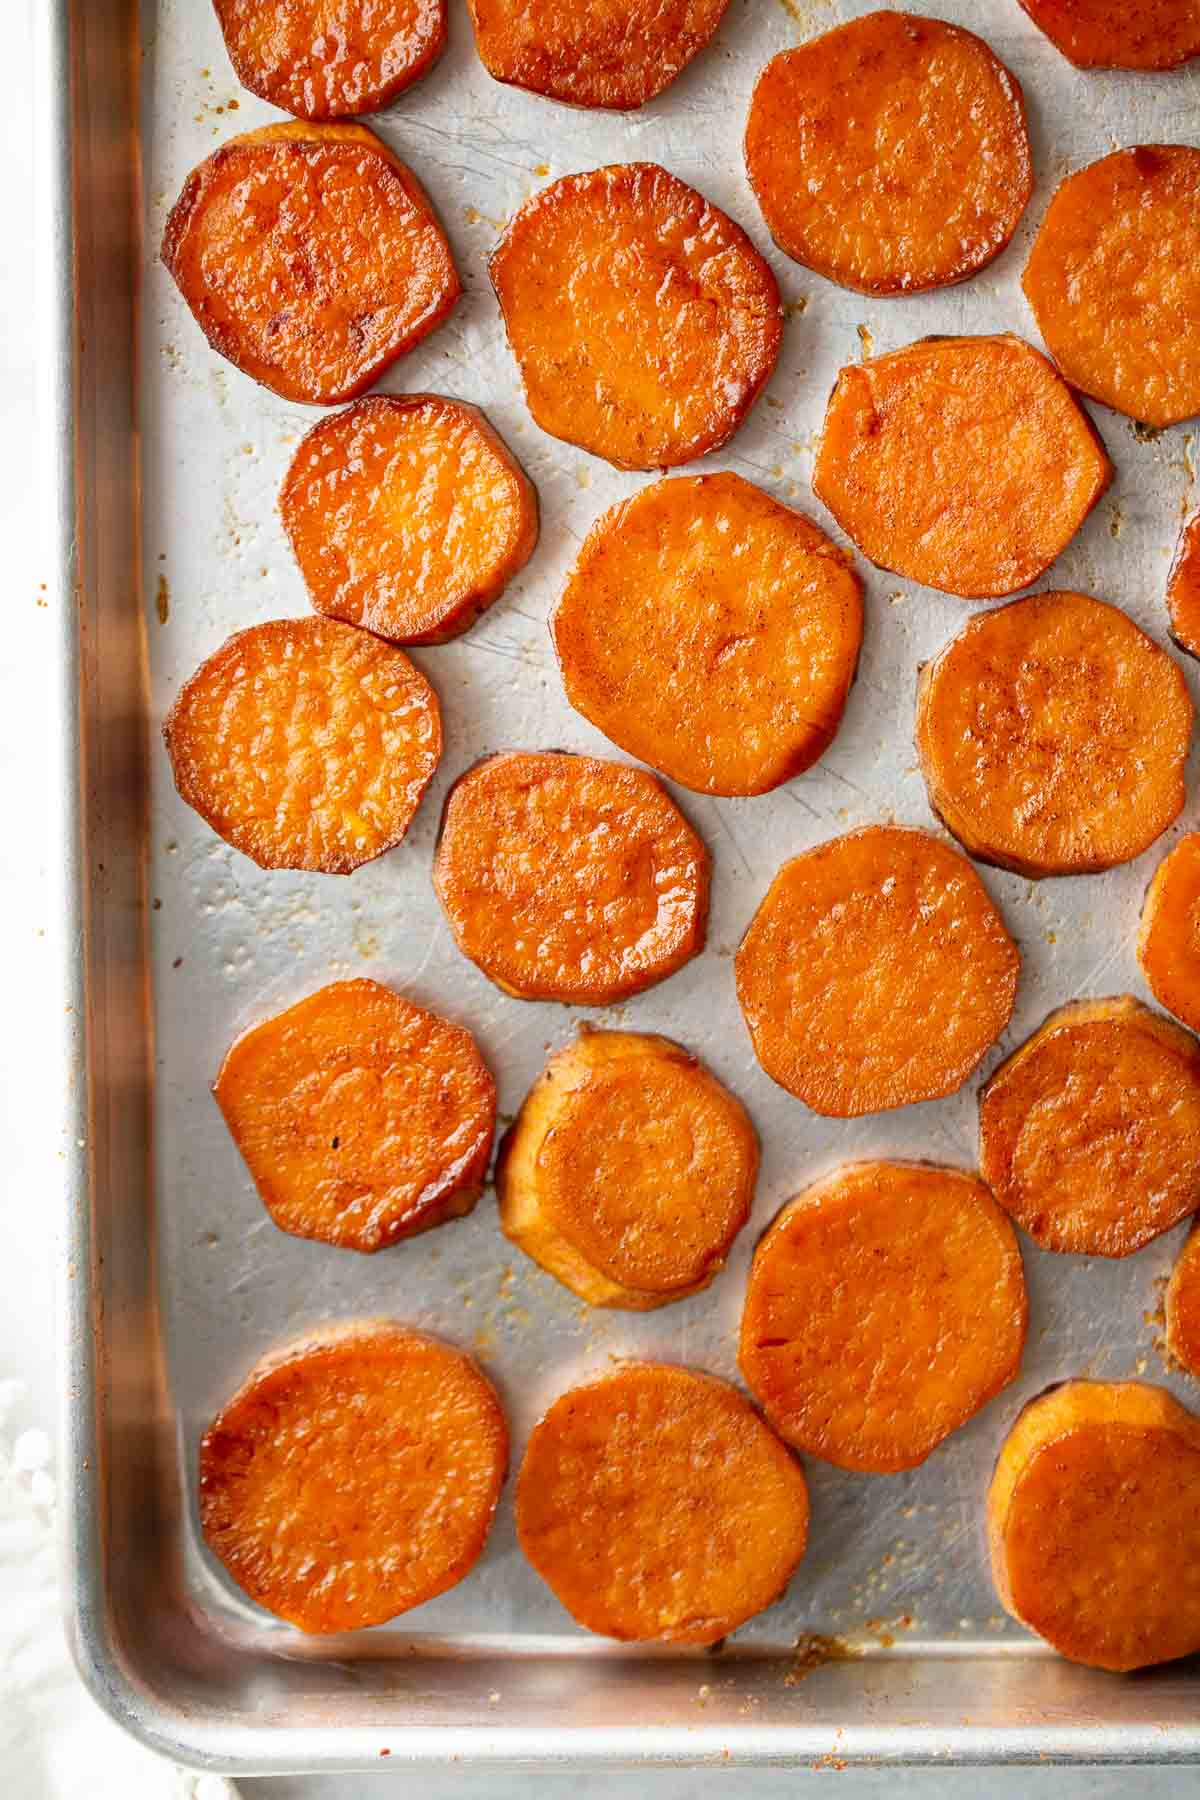 roasted sweet potatoes cut in circles on pan